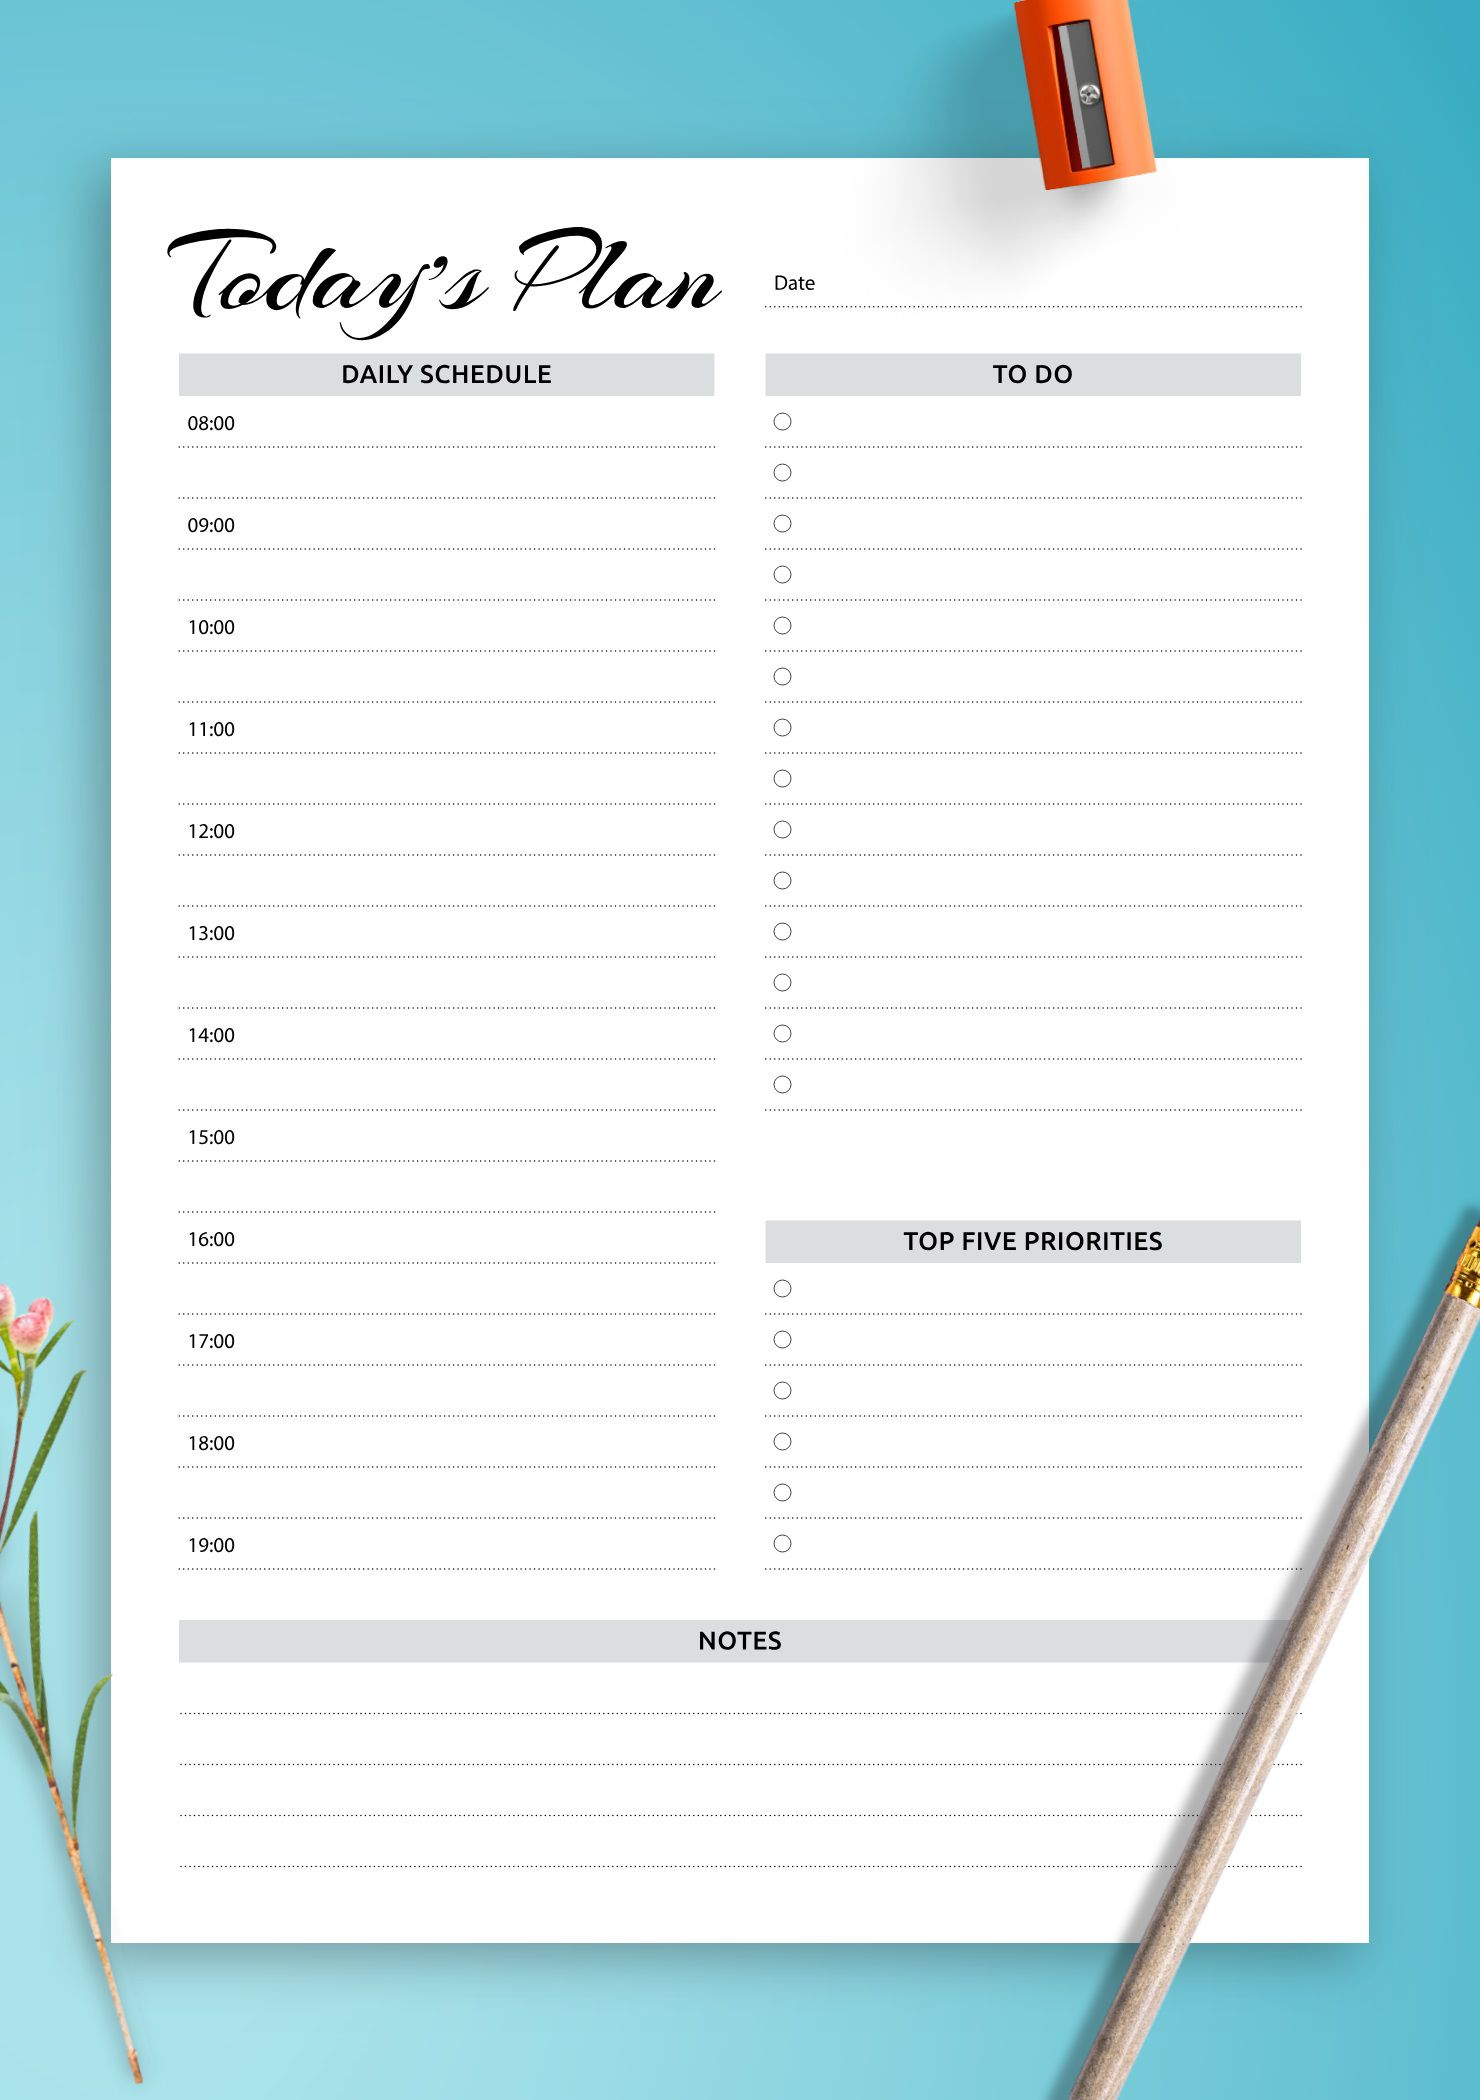 008 Fascinating Printable Daily Schedule Template Photo Full